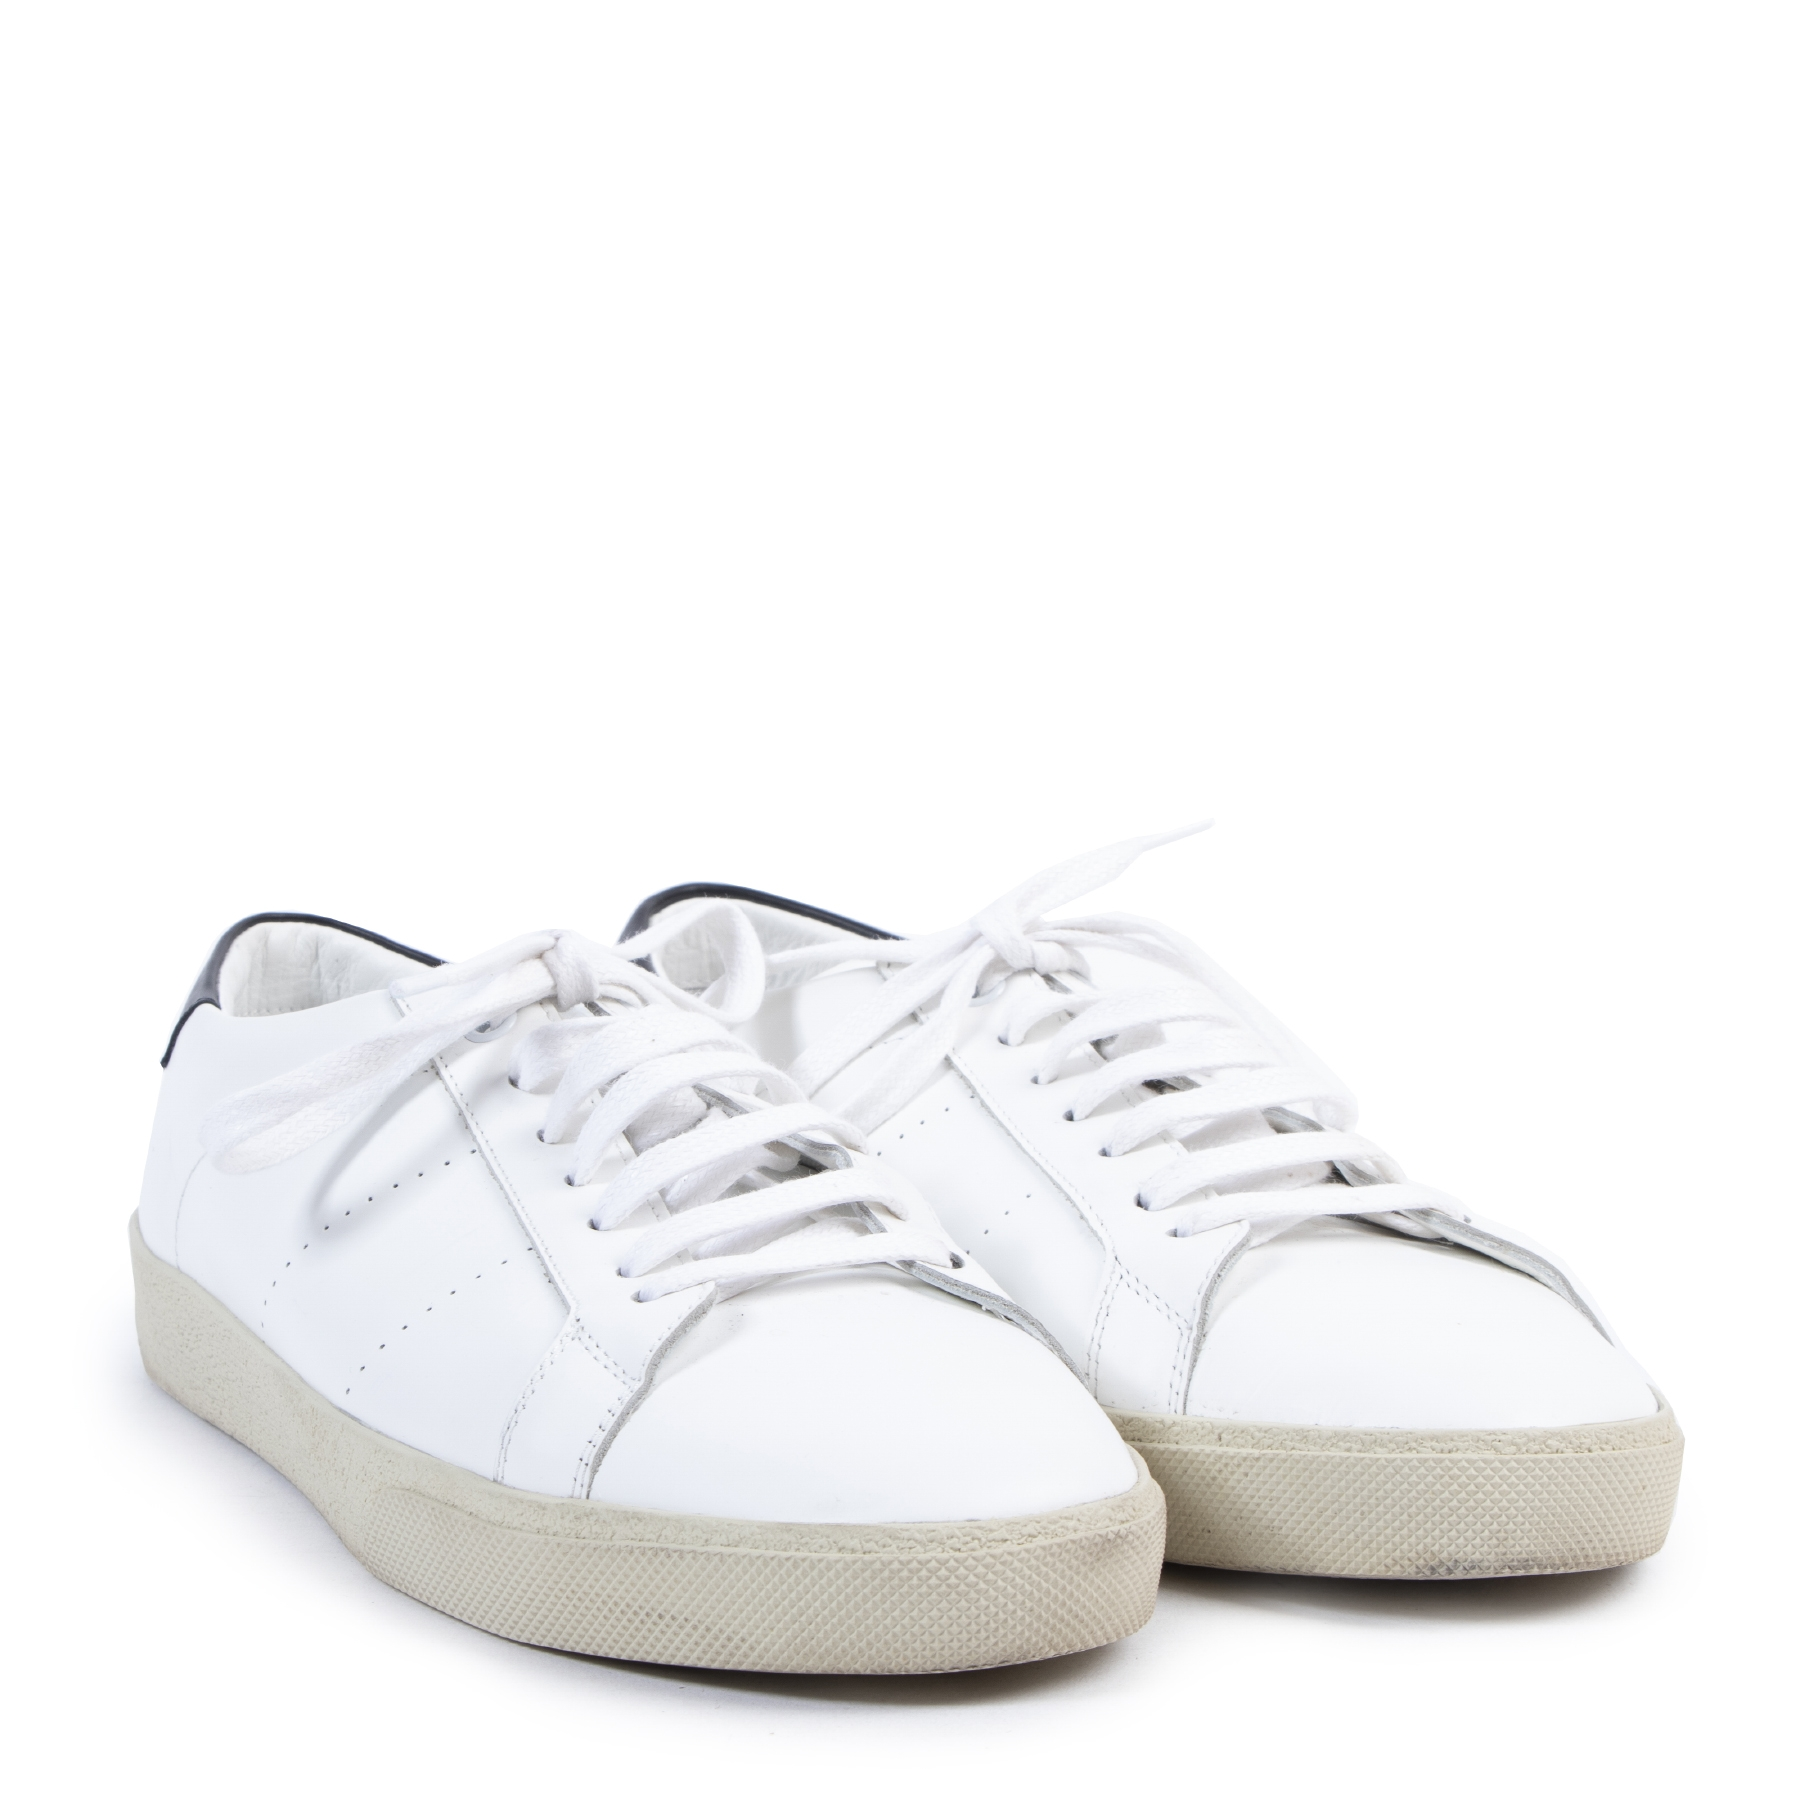 Saint Laurent White Signature Court Sneakers - Size 42